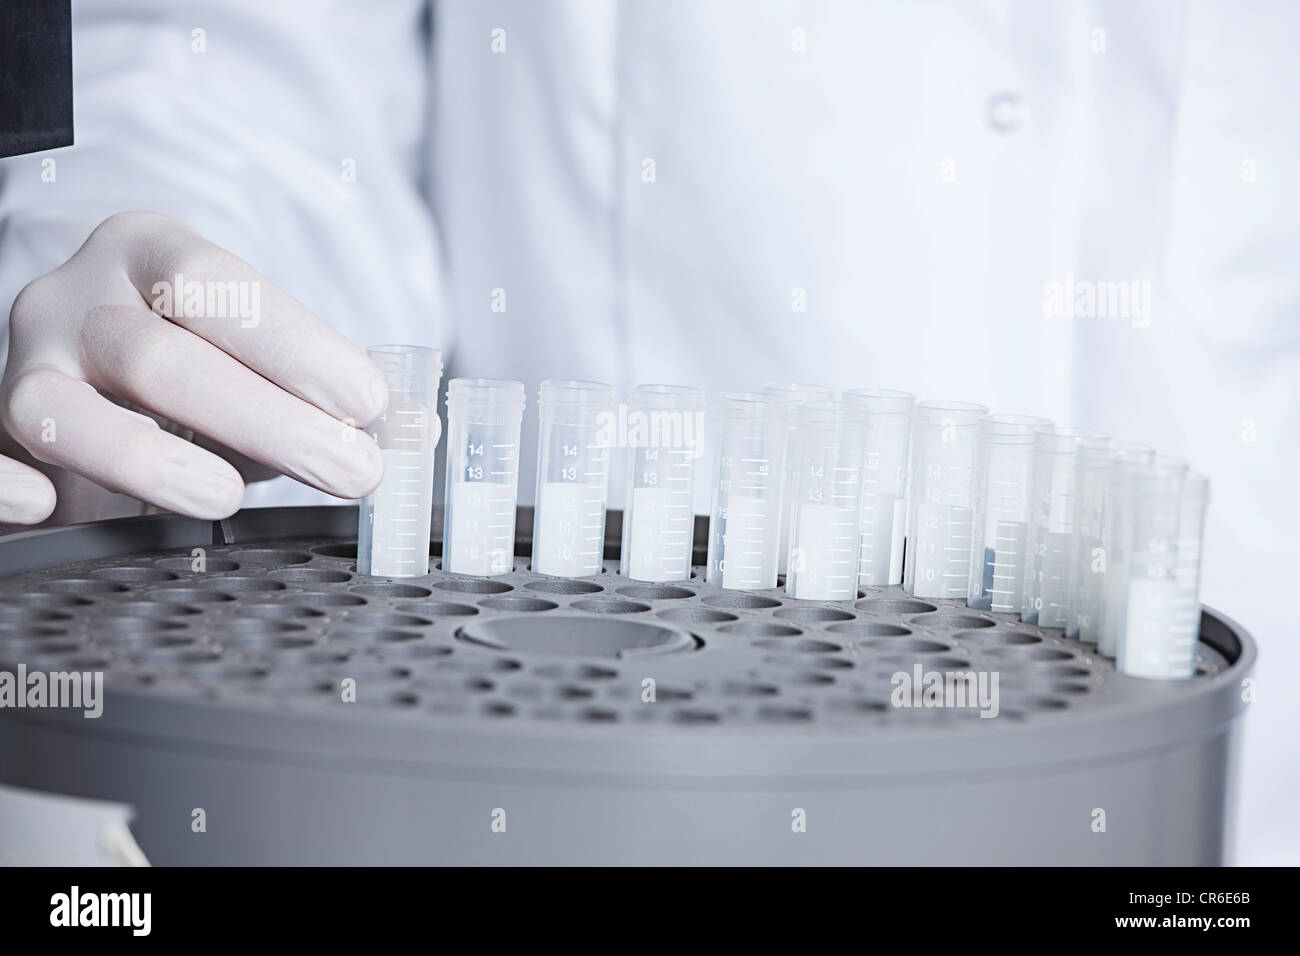 Germany, Bavaria, Munich, Scientist holding test tube for medical research in laboratory - Stock Image